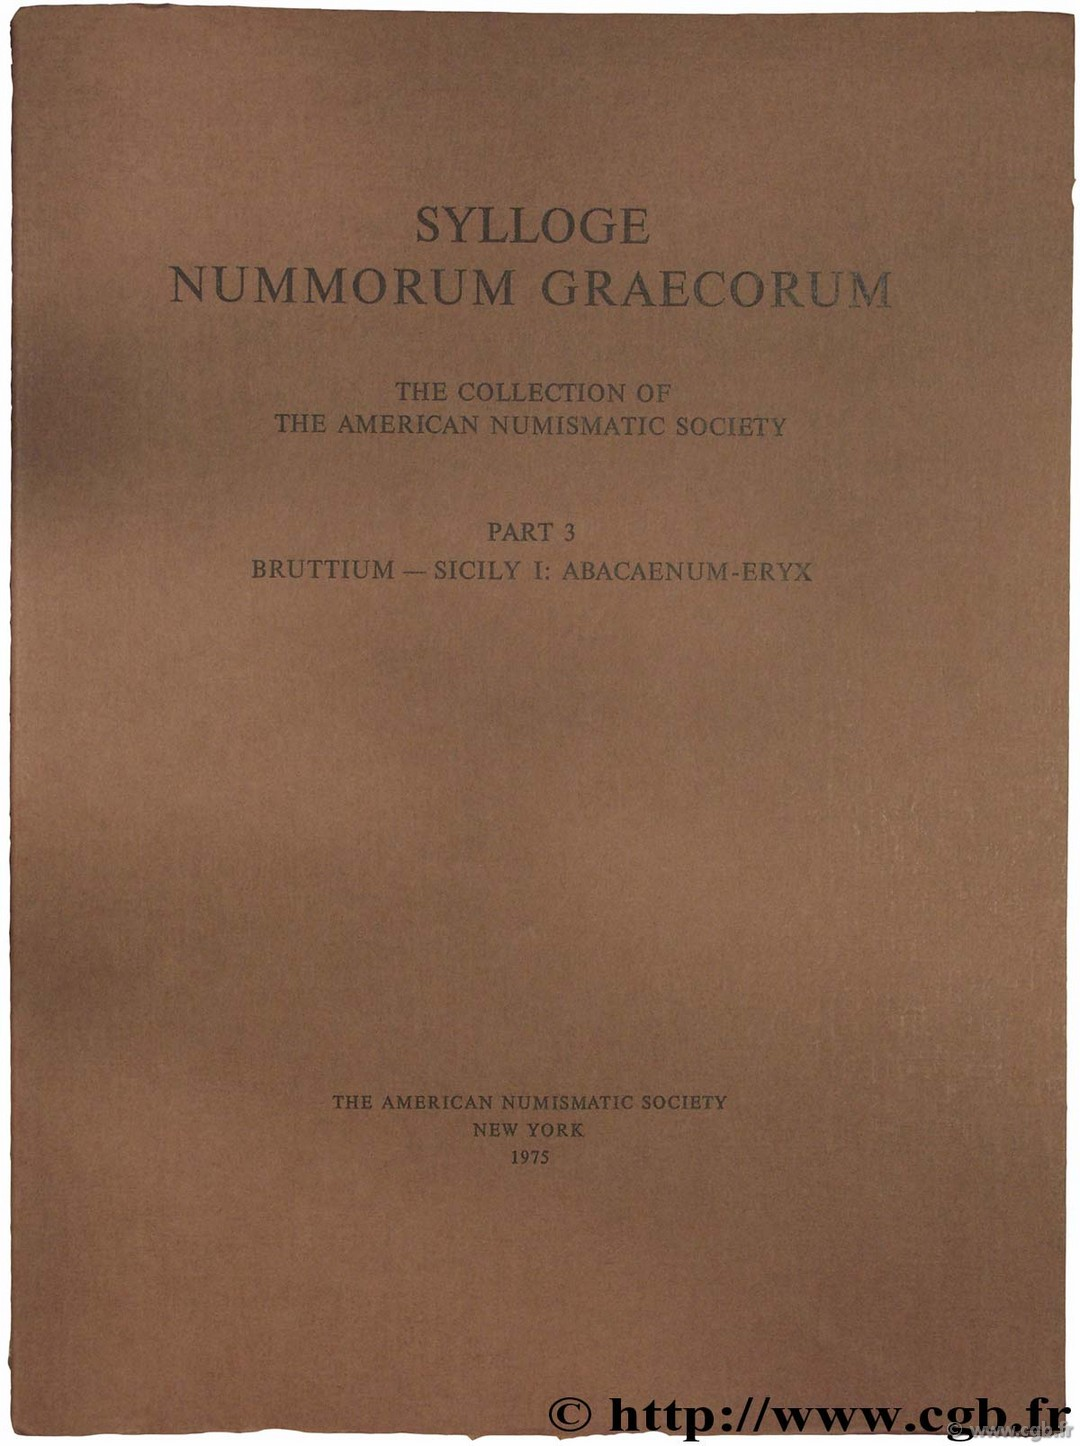 Sylloge Nummorum Graecorum (S.N.G.), The collection of the American Numismatic Society, part III, Bruttium - Sicily I : Abacaenum - Eryx